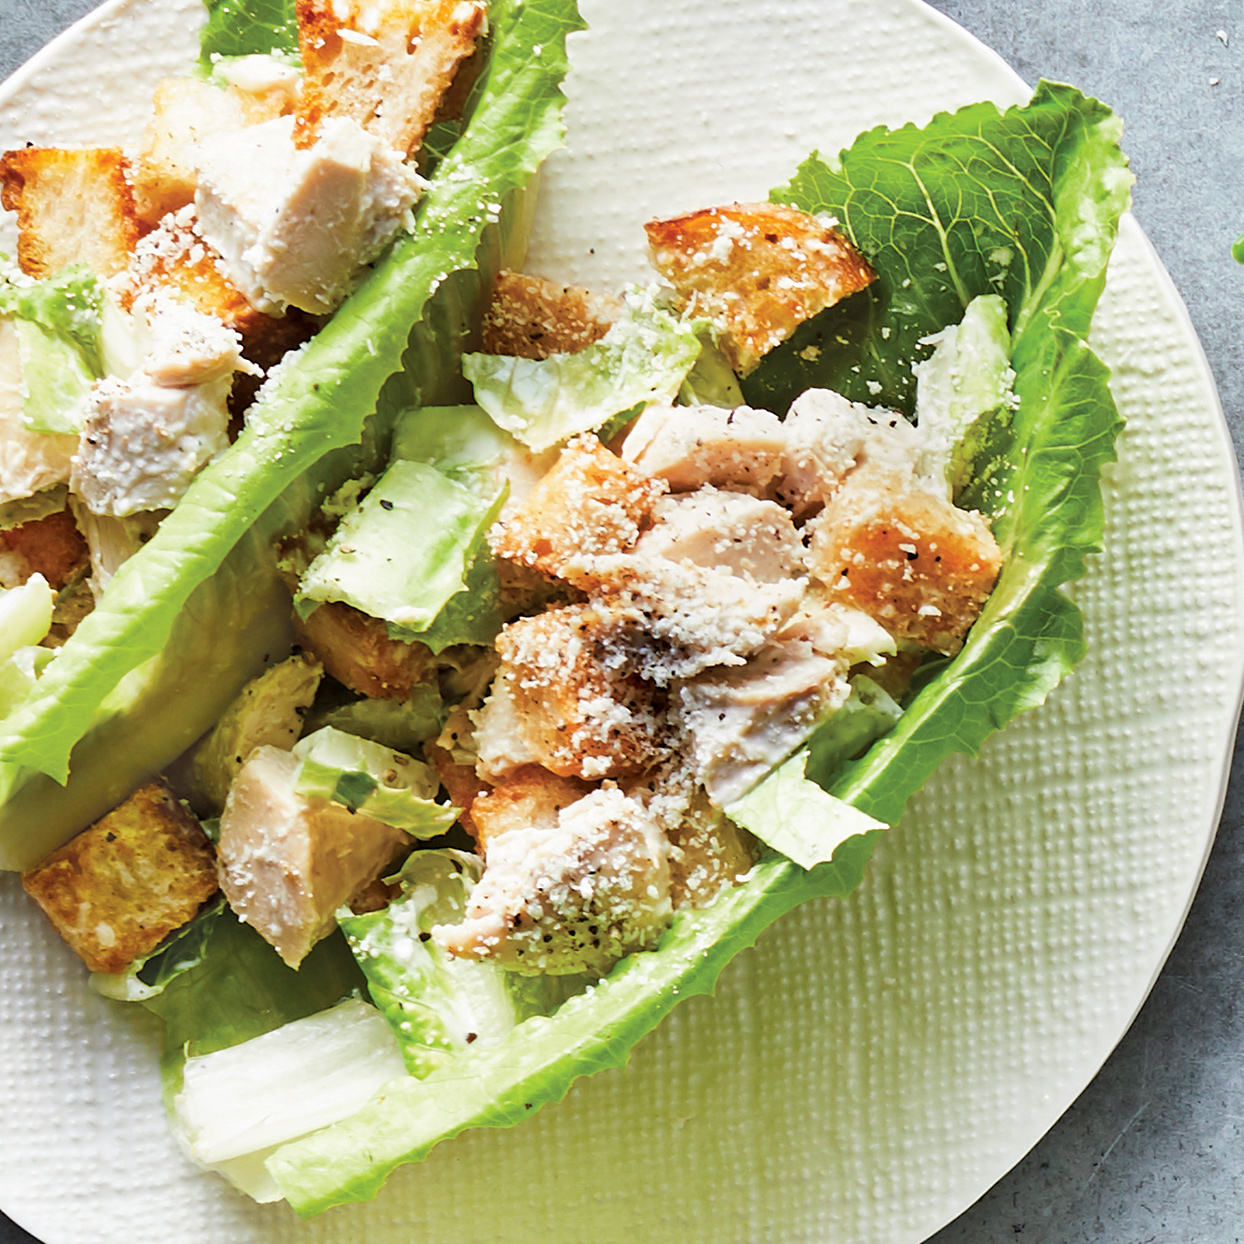 Upgrade your work lunch with these tasty Caesar salad lettuce cups. This Caesar salad recipe gets a healthy makeover, thanks to homemade dressing made with Greek yogurt. Source: 400 Calorie Recipes